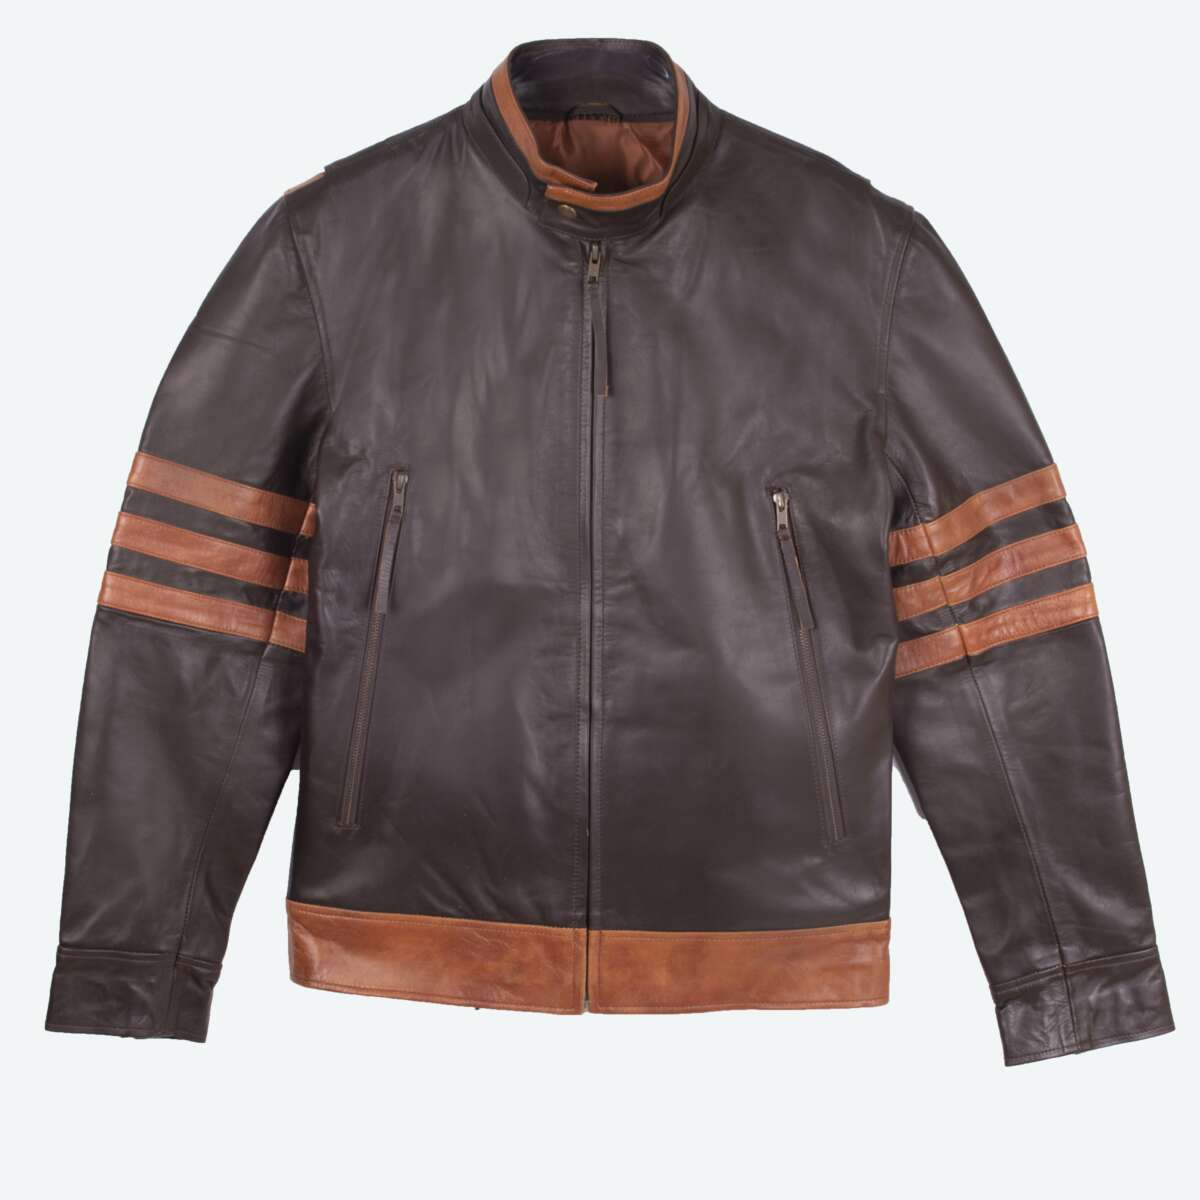 Two-Tone Cafe Racer Jacket With Applique Detail